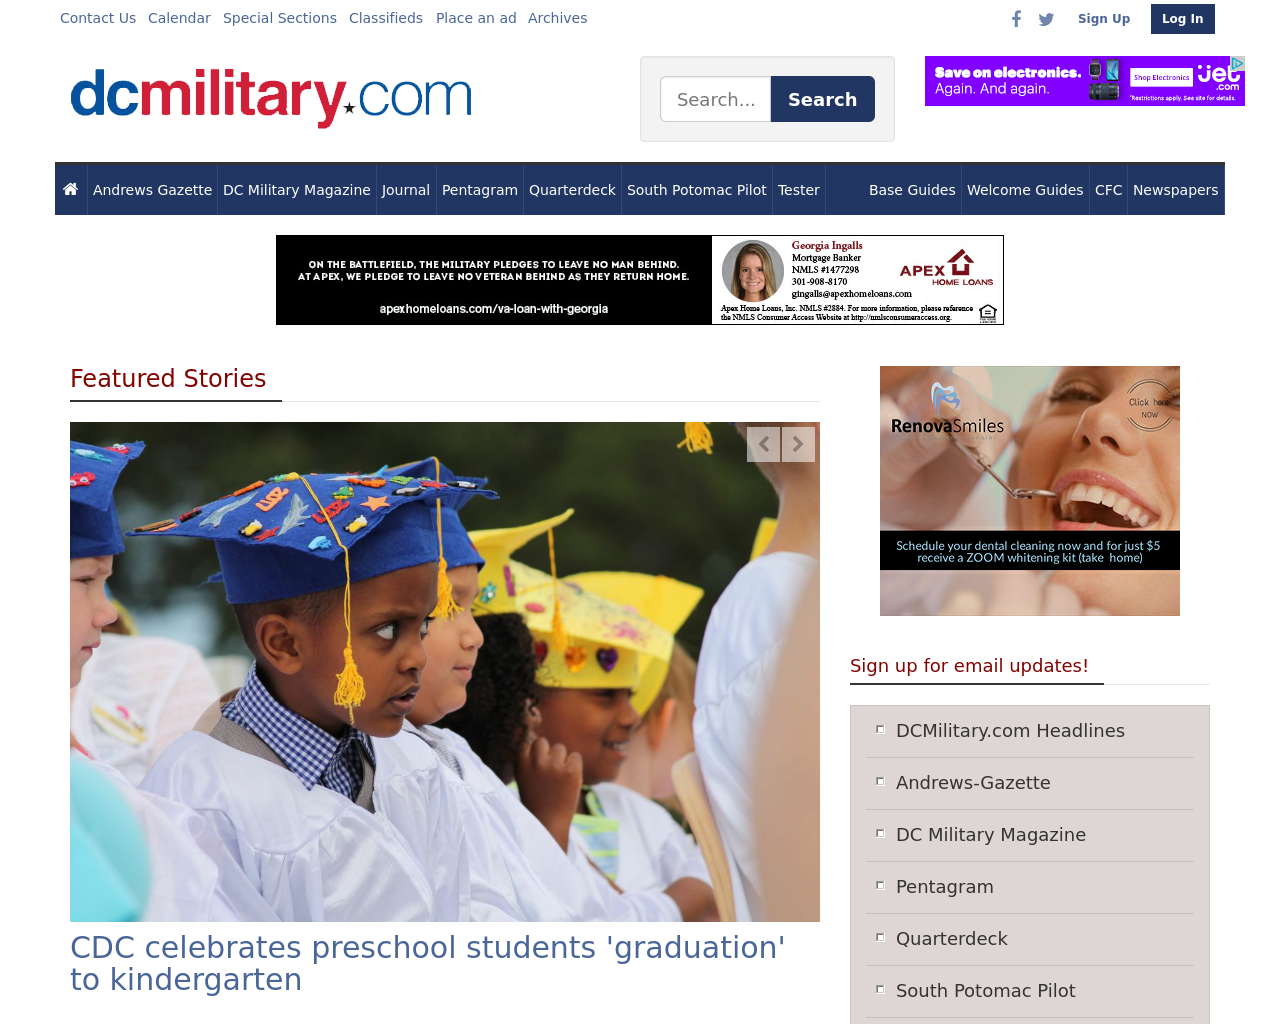 dcmilitary-family-life-Advertising-Reviews-Pricing